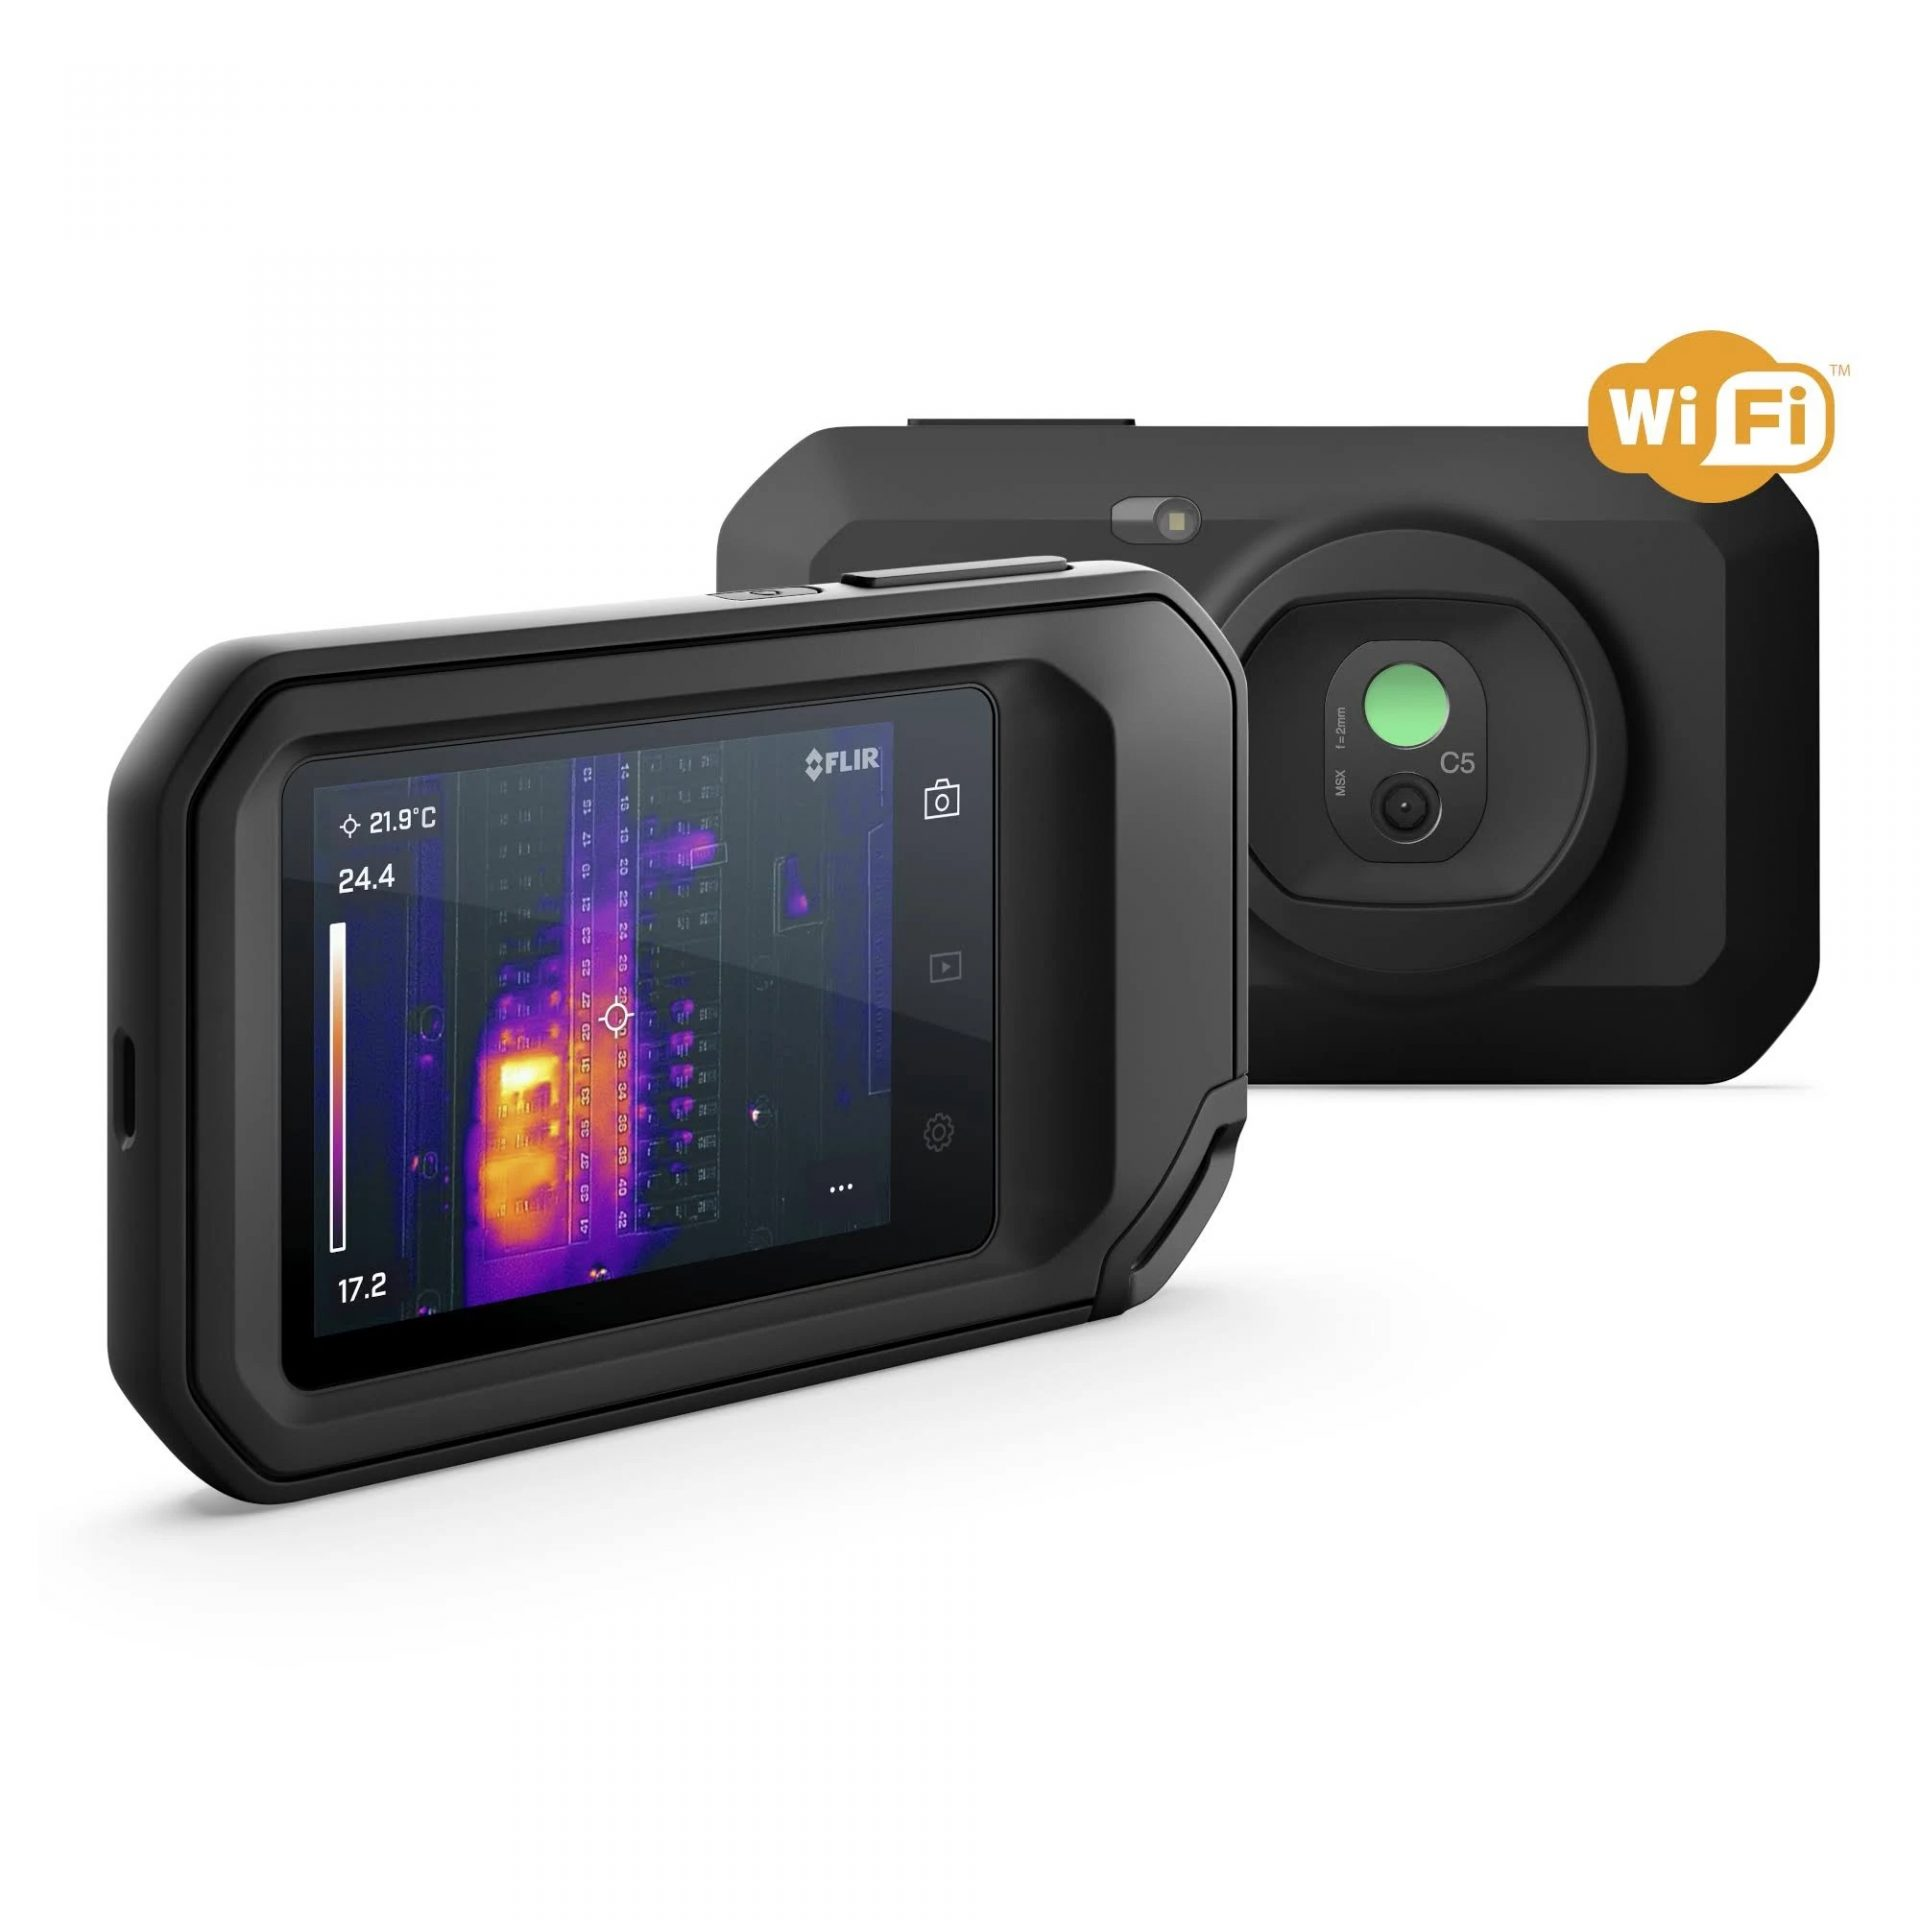 Our Home Inspector uses FLIR camera for thermal imaging